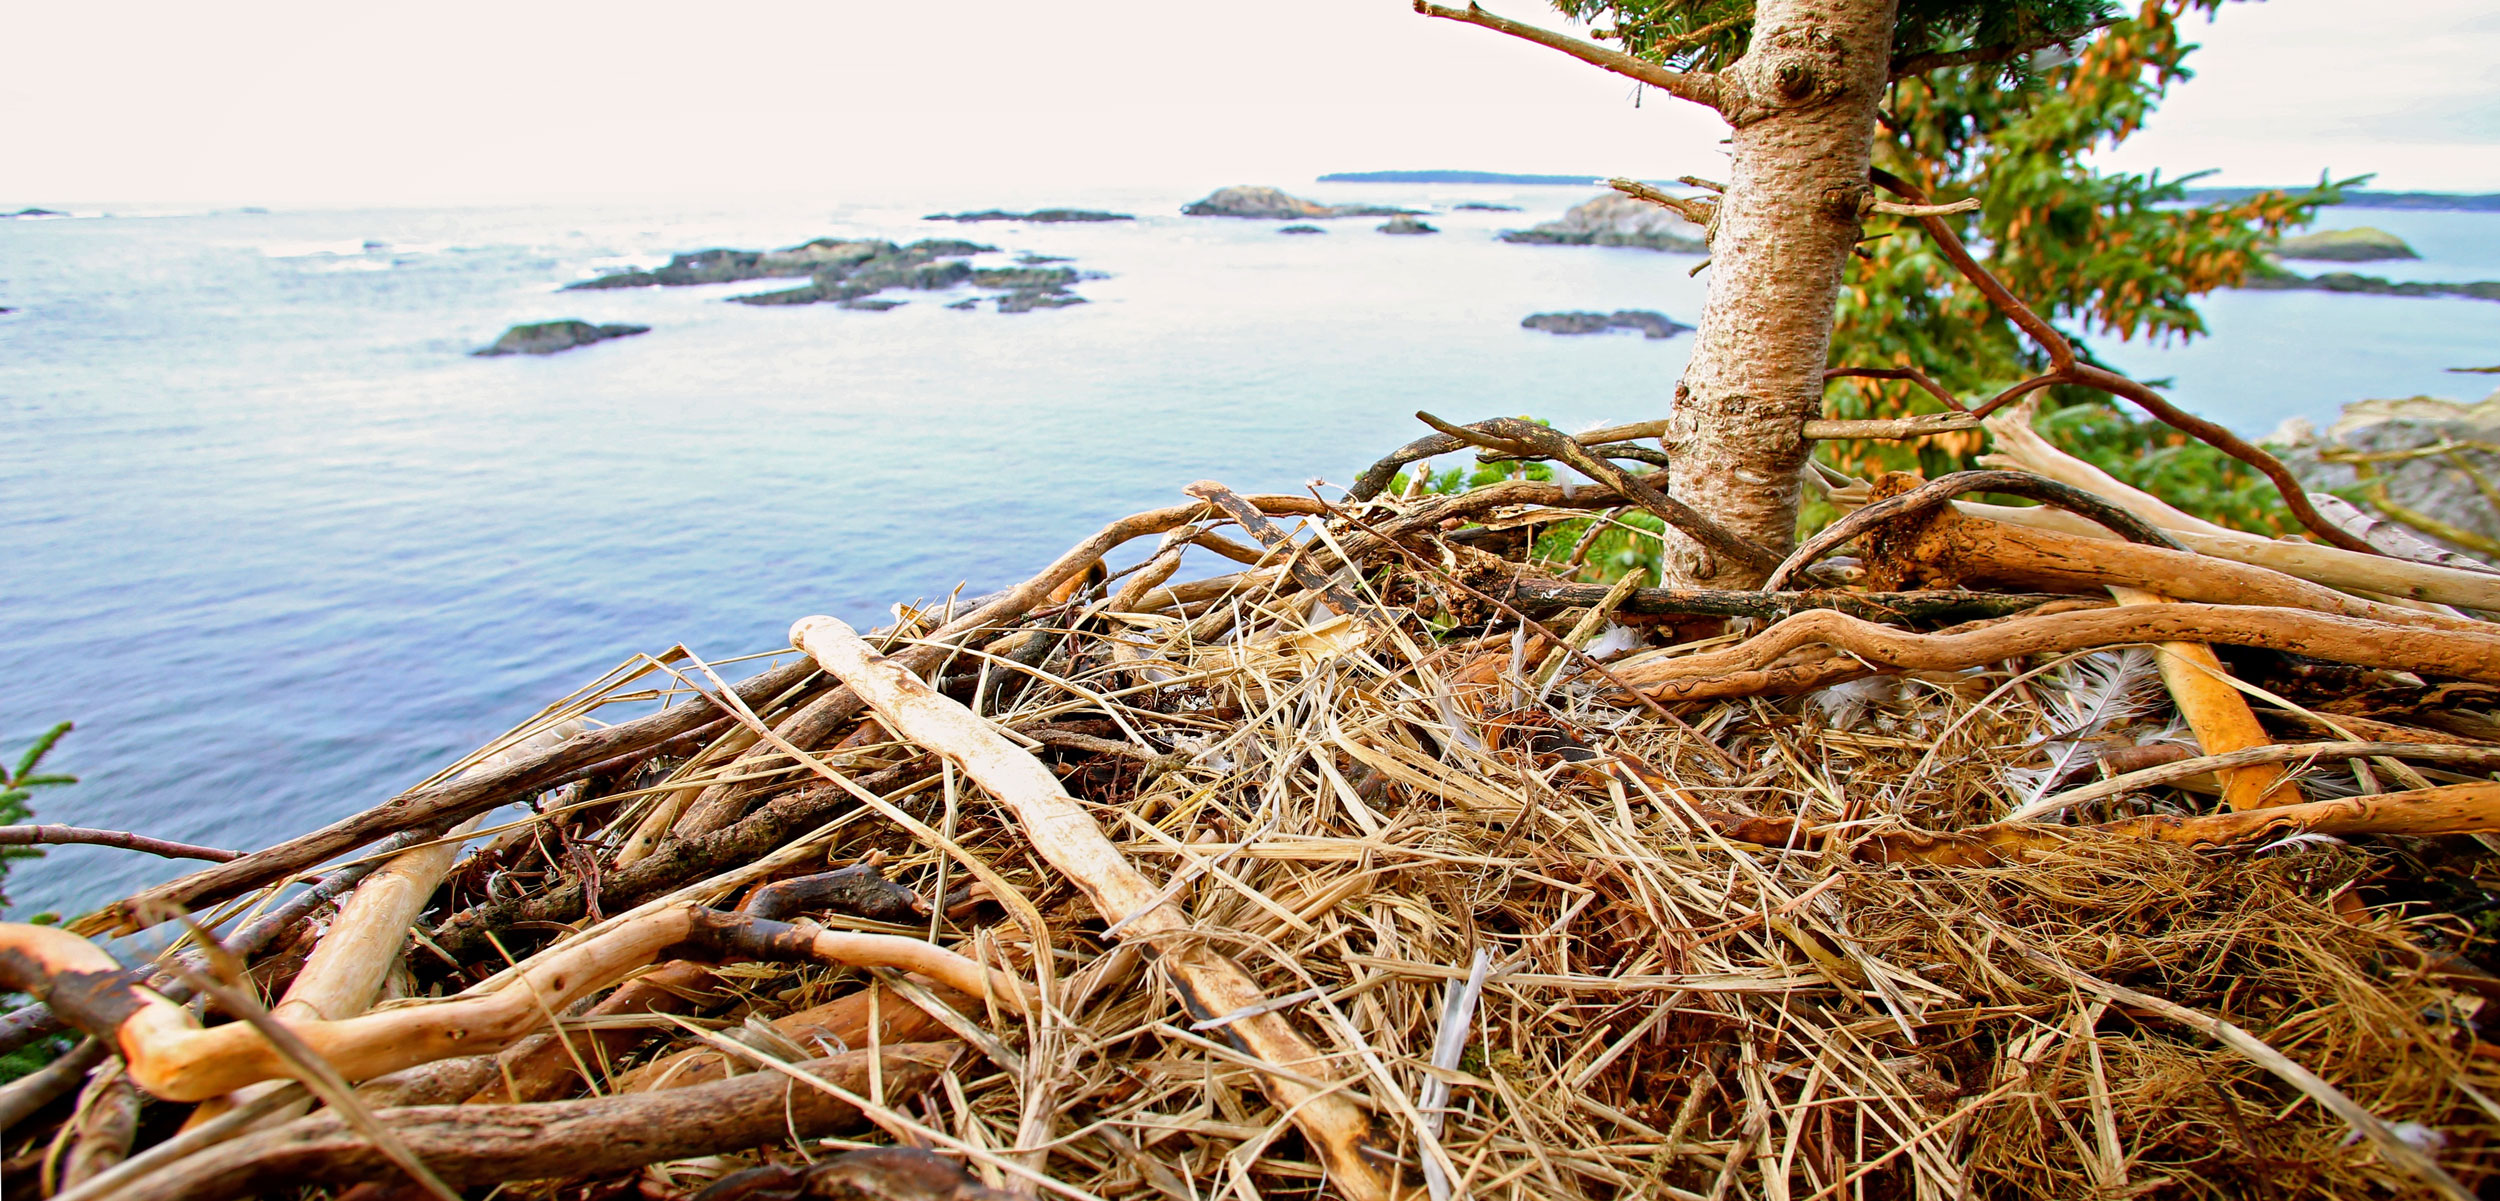 The bald eagle's nest was built in part from hardy strands of Pterygophora kelp. Photo by Erin Rechsteiner/Hakai Institute